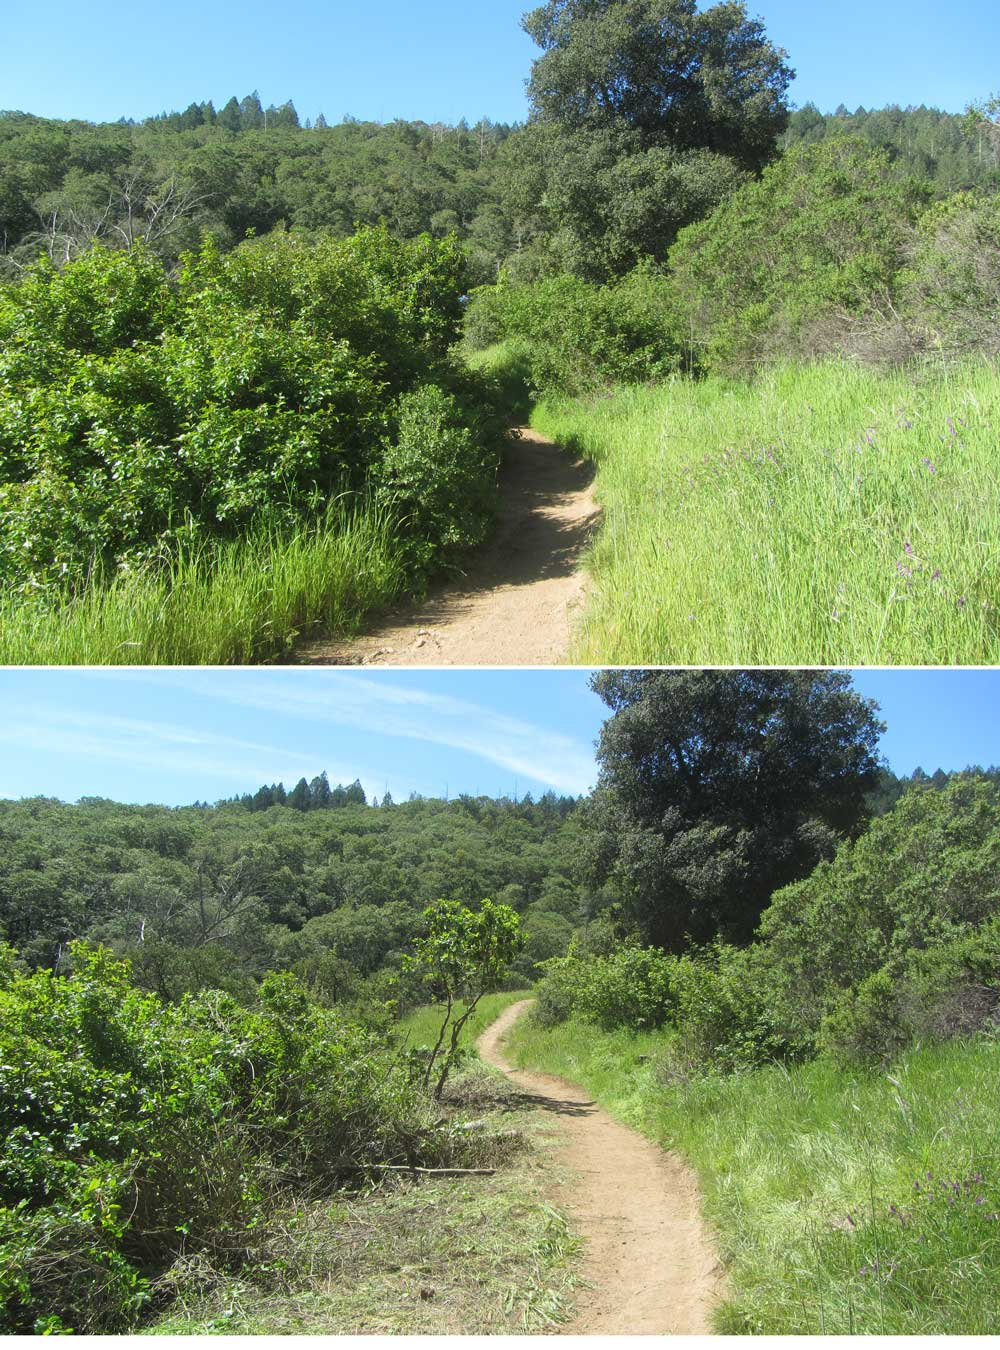 Lanwdale_Before-After-1w.jpg